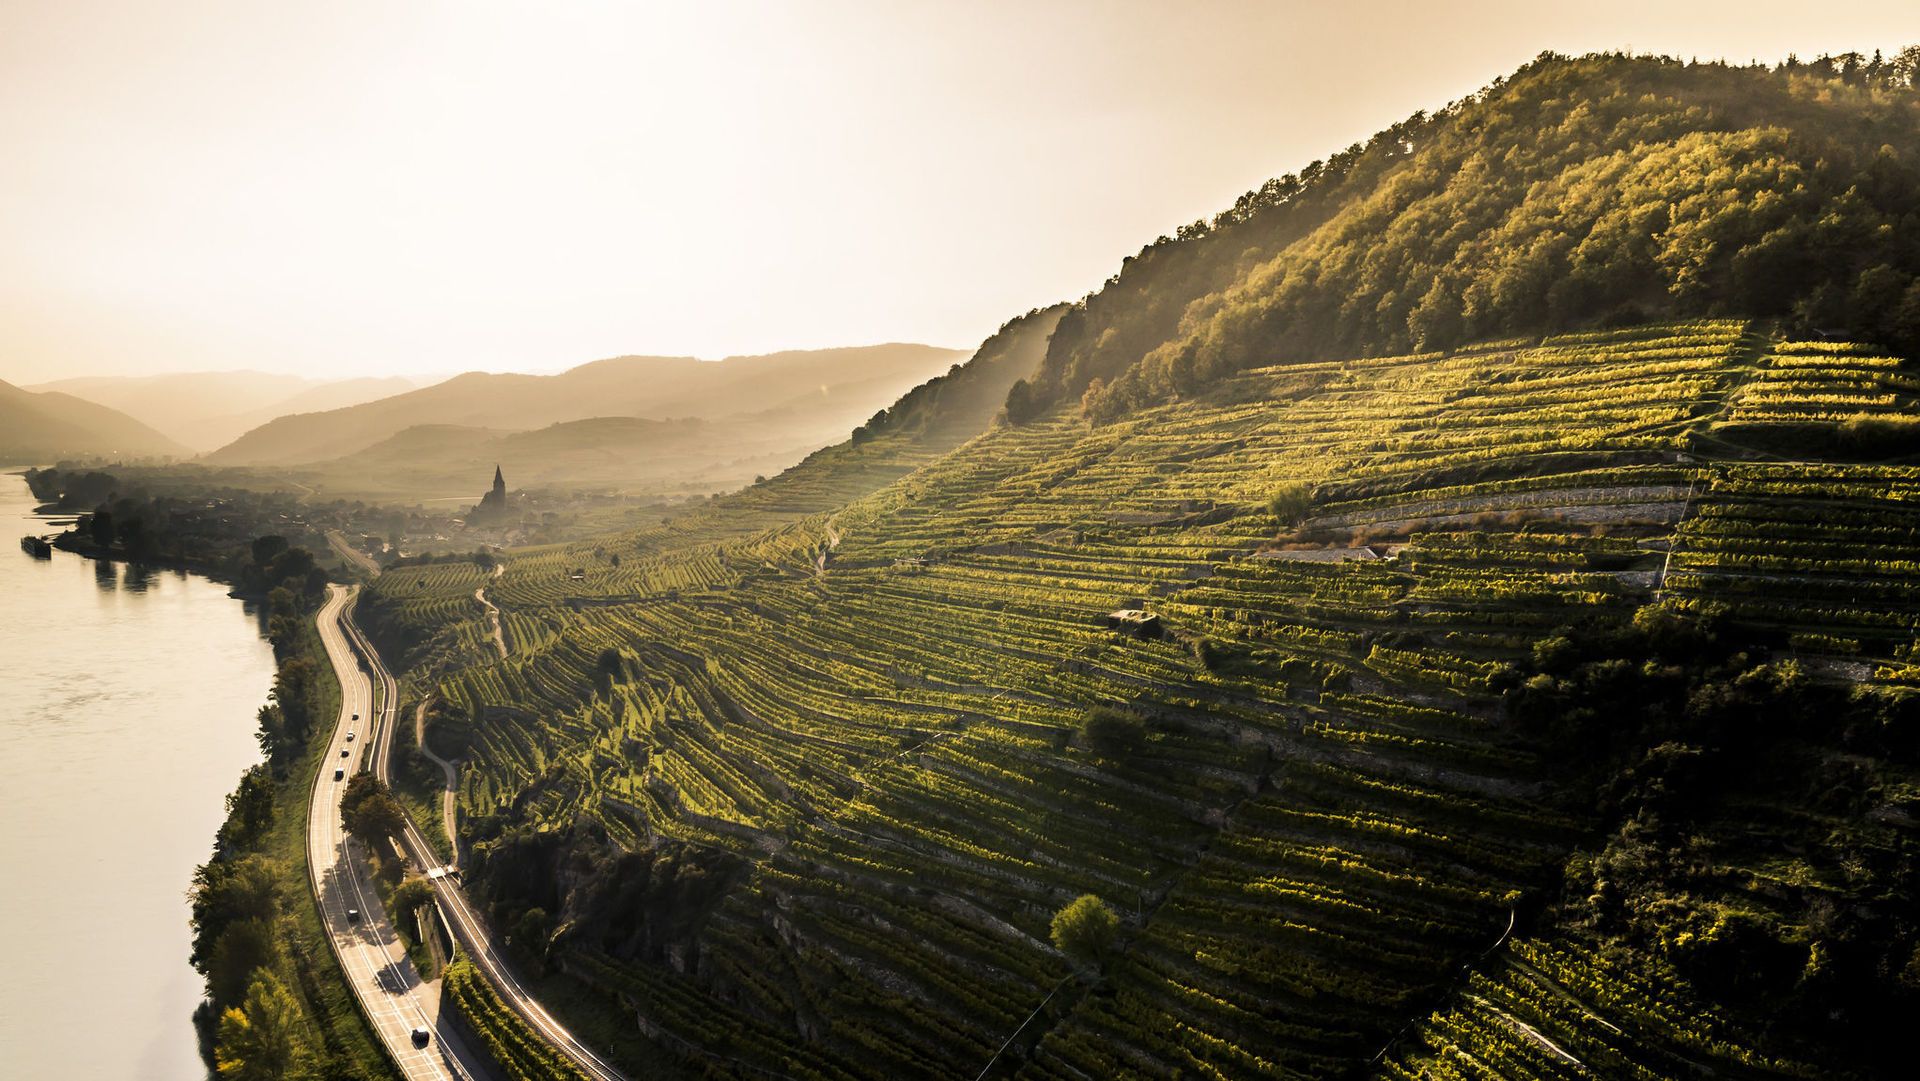 A picture shows steep vineyards along the Danube River.